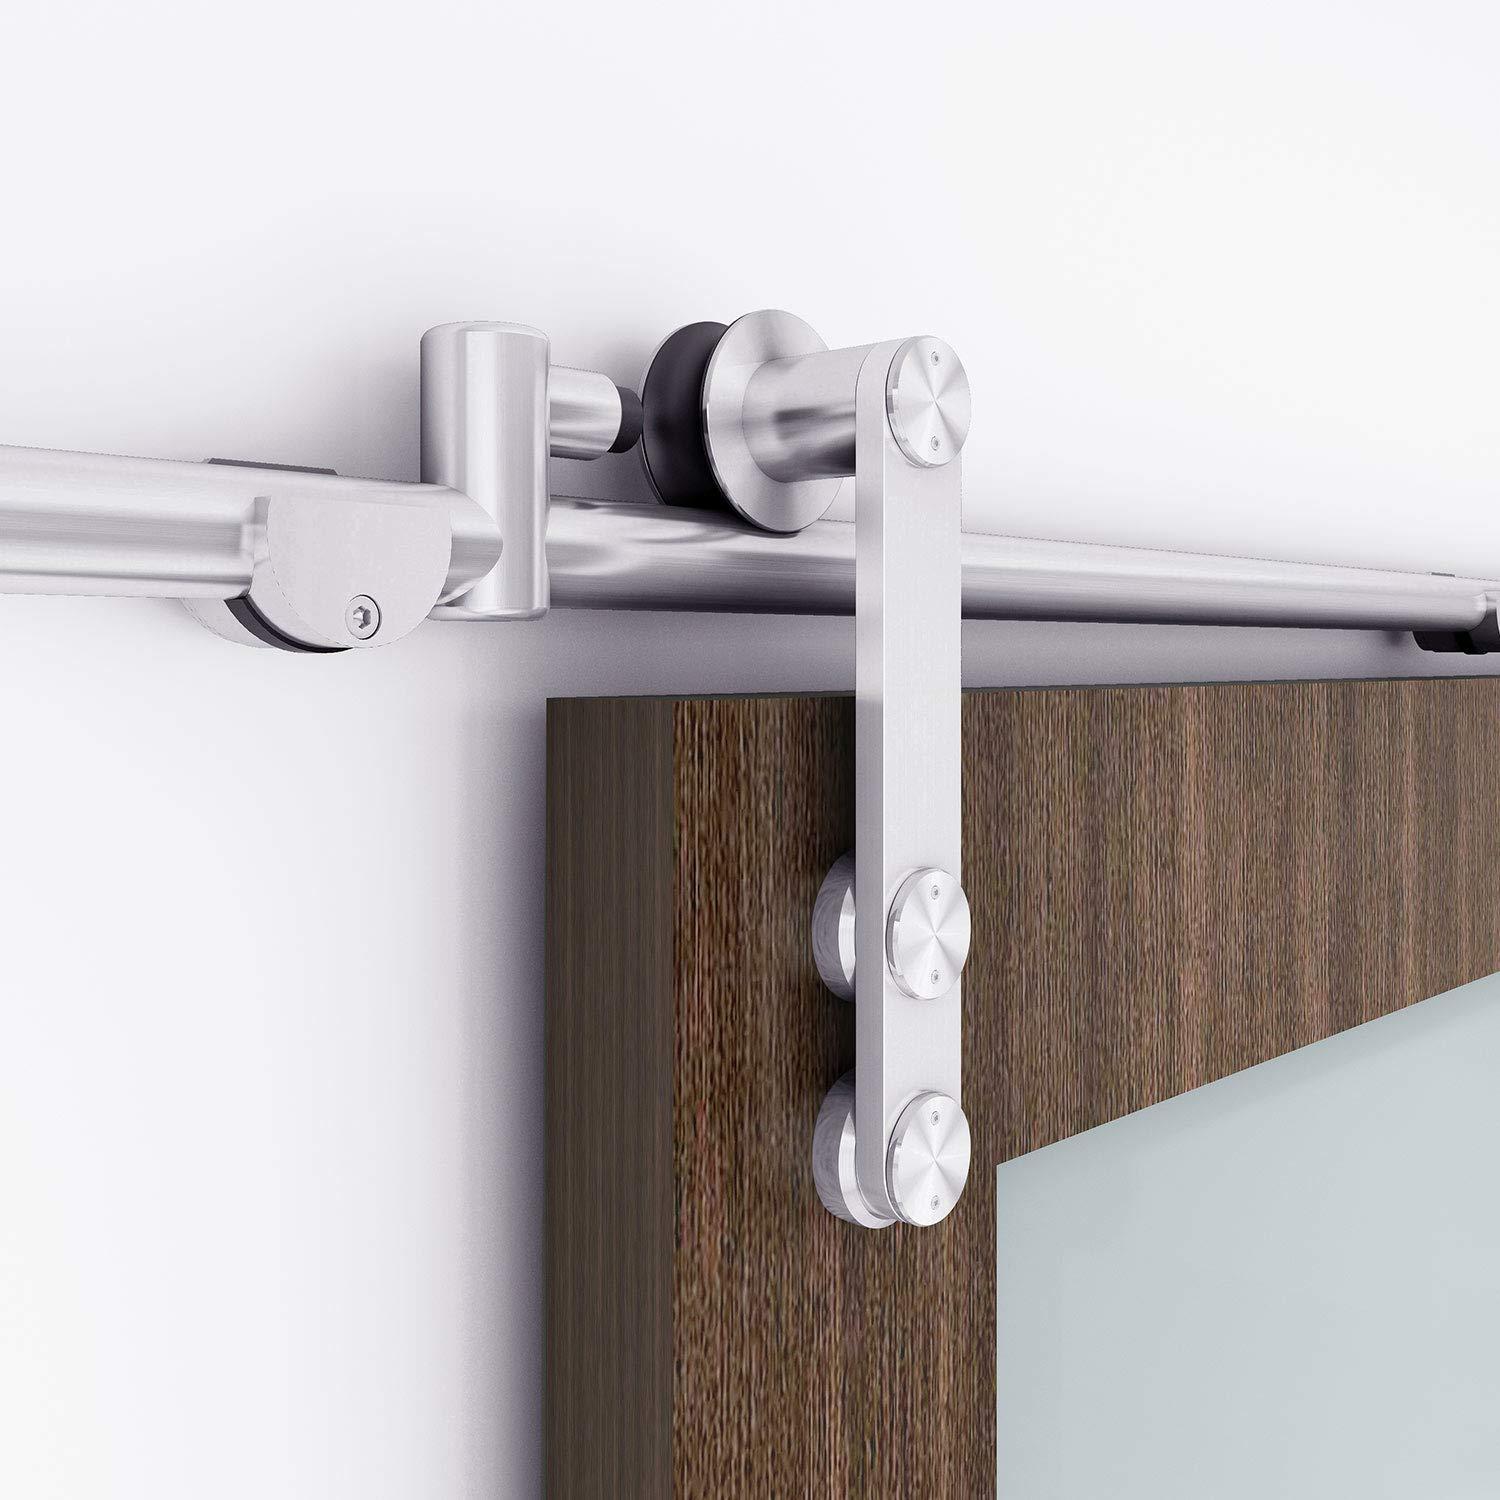 """Contractor/'s Choice Contractors Choice Oversized Two-Side Design with Durable Stainless Steel Finish Oversized Two-Side Design with Durable Stainless Steel Finish INDUSTRIAL BY DESIGN Heavy Duty 12/"""" Pull and Flush Barn Door Handle Set"""